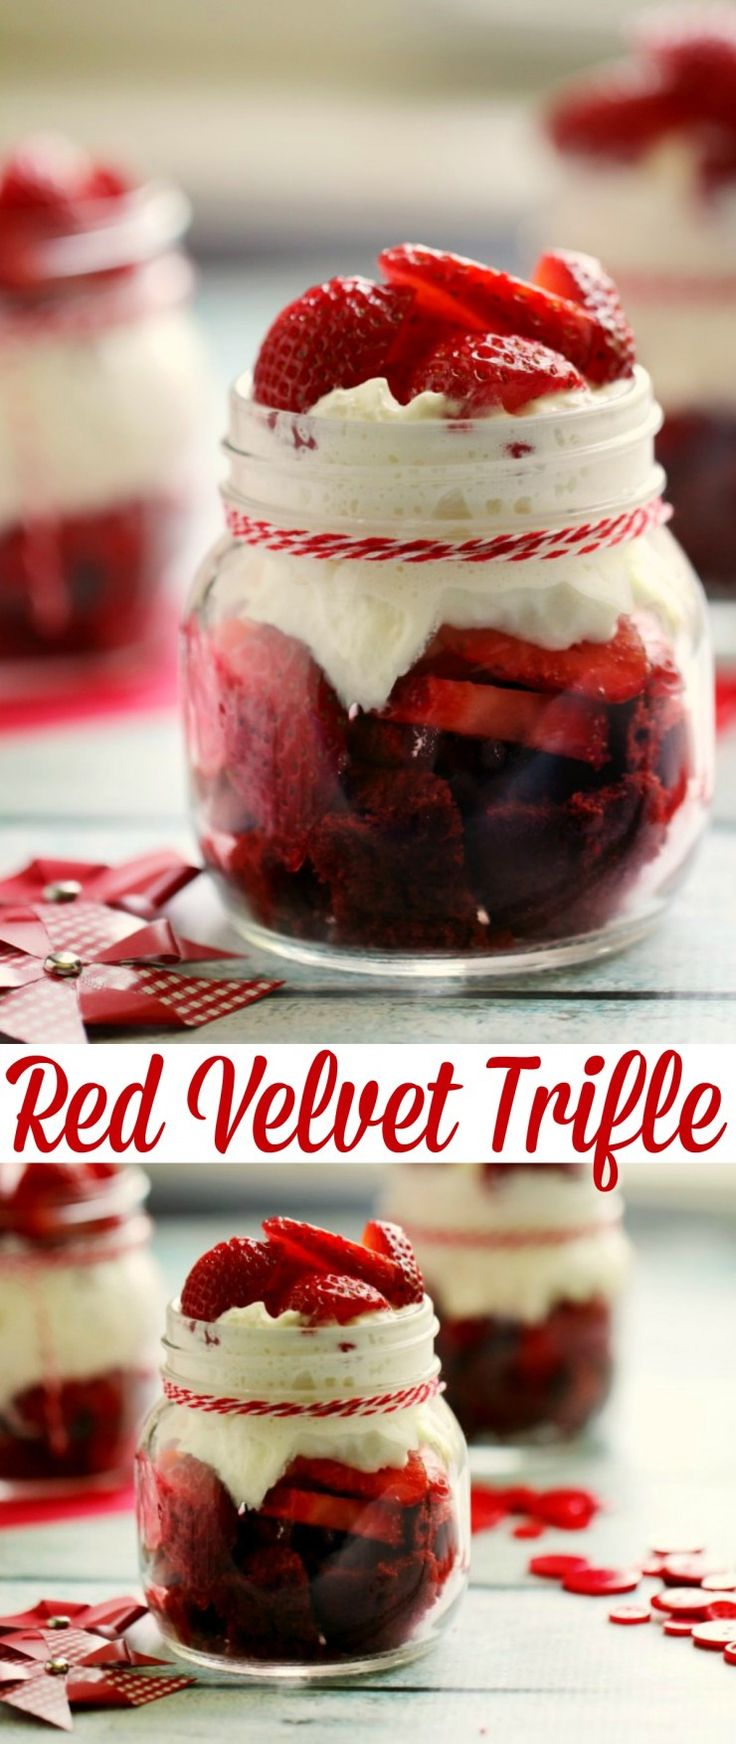 Pudding Ideas For Dinner Party Part - 23: Red Velvet Trifles. Trifle DessertsMini ...